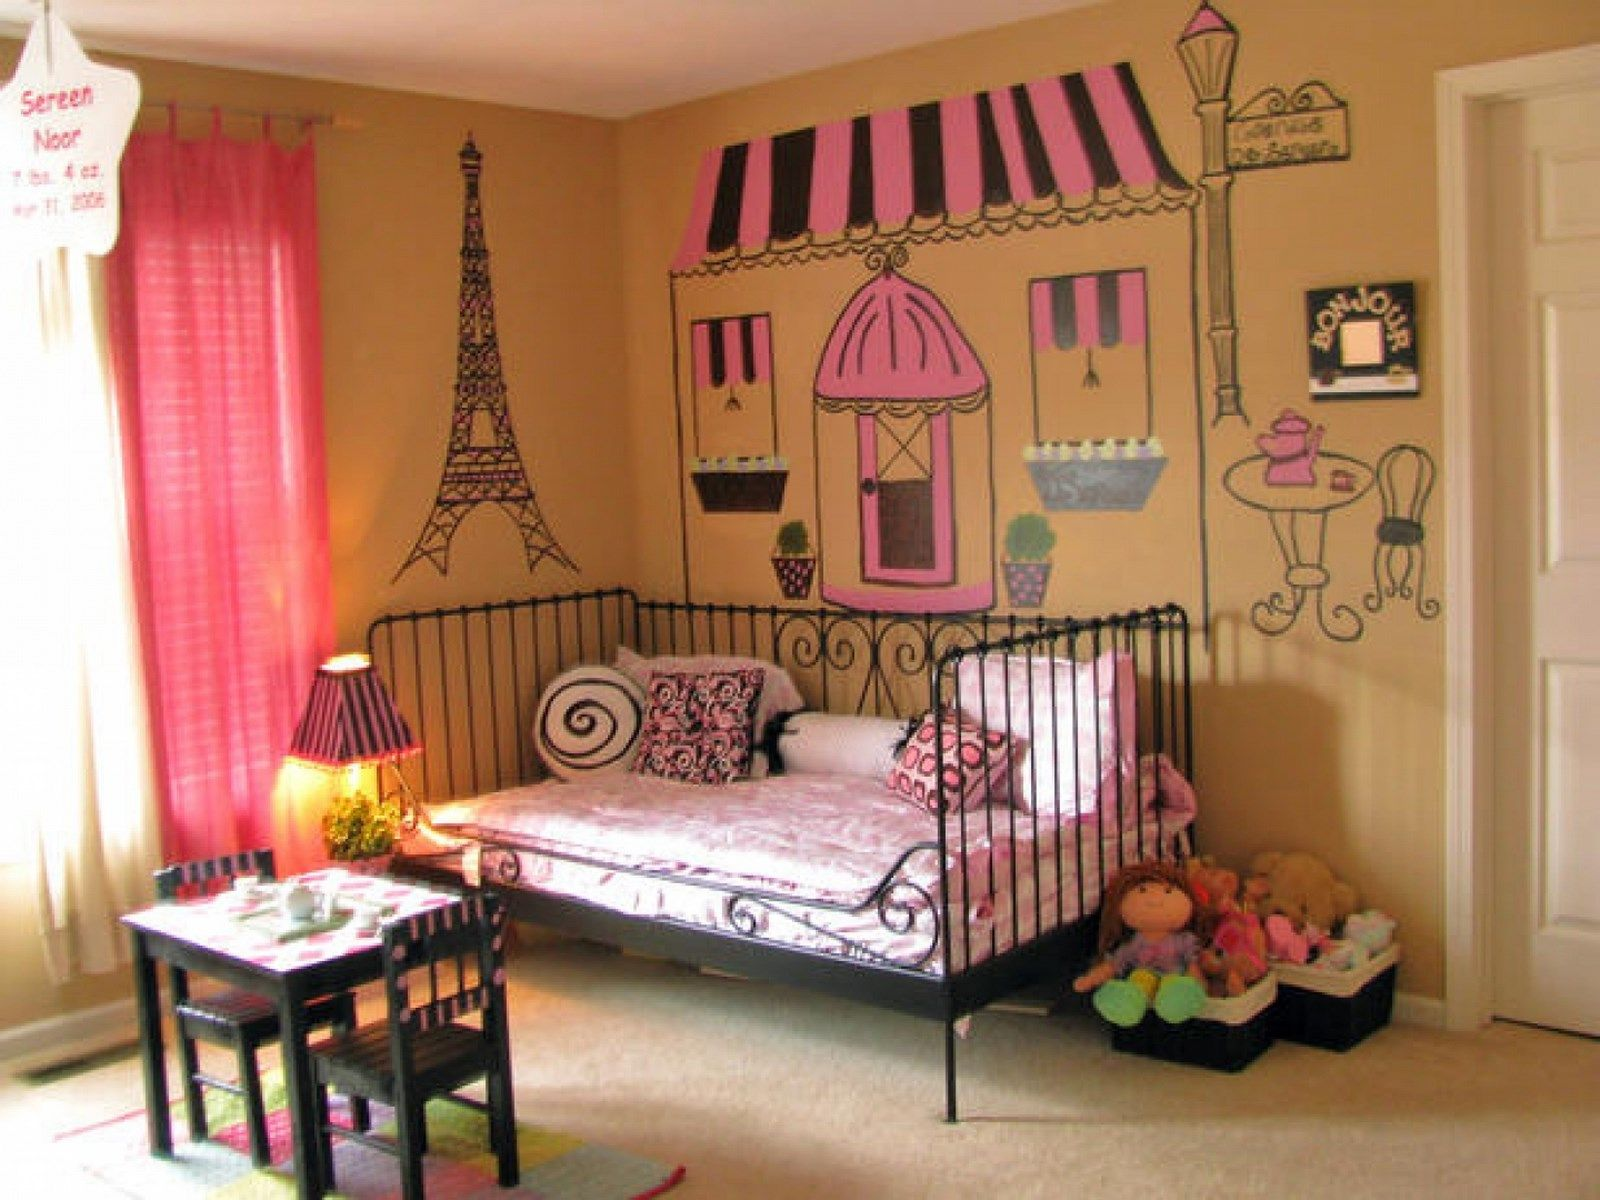 50 Girls Paris Room Decoration Ideas for Bedrooms Check more at